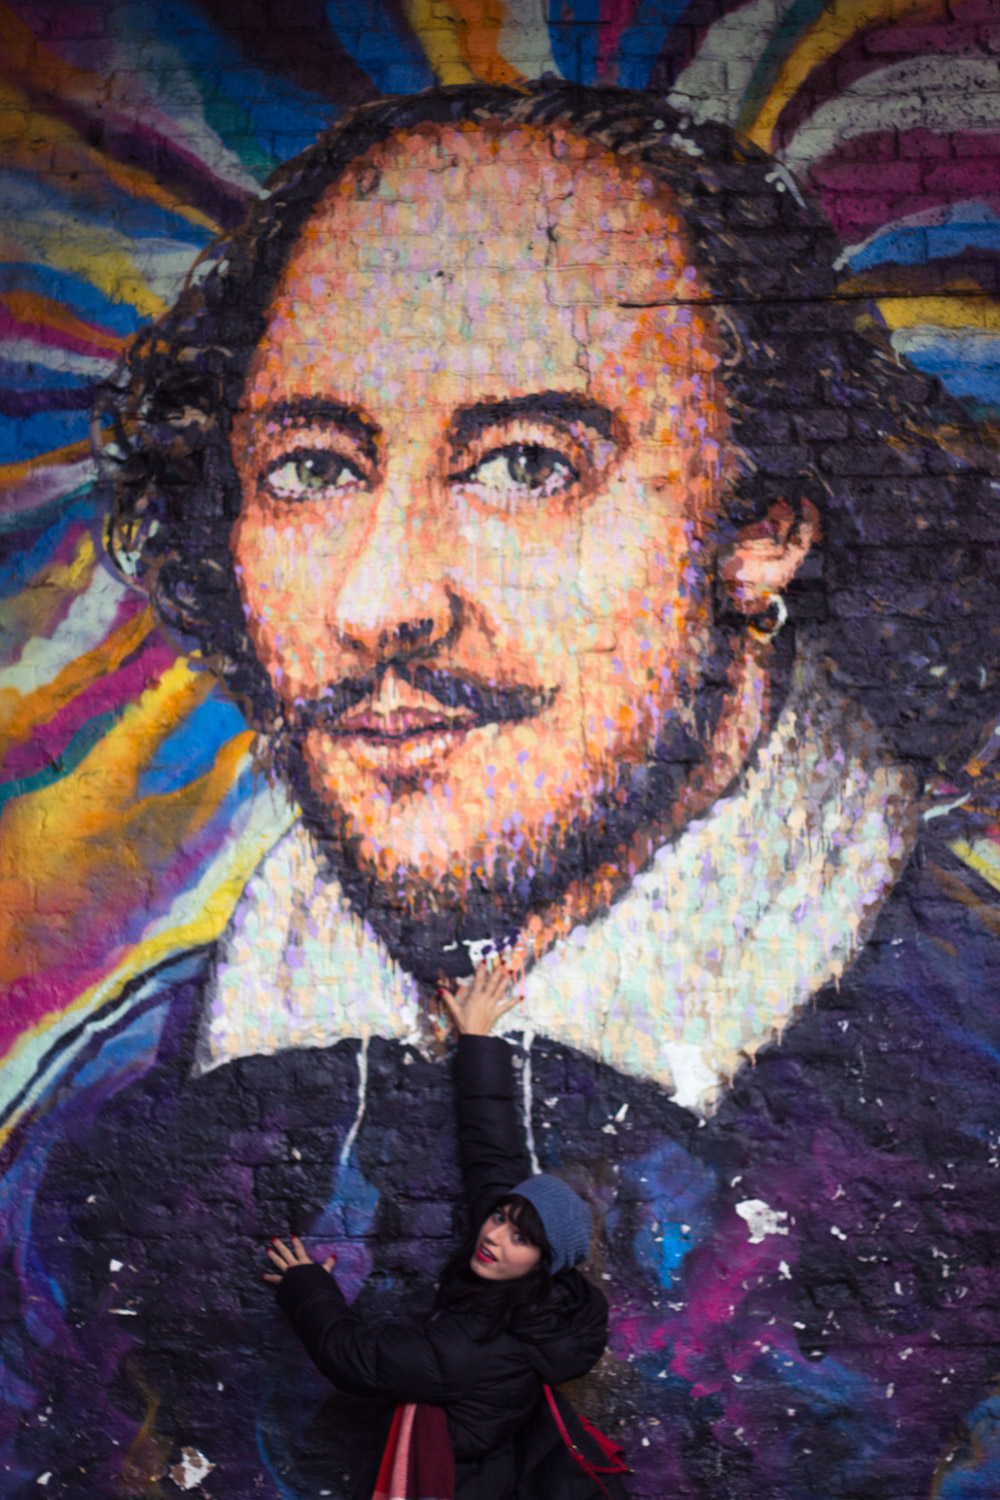 Smiling with Shakespeare mural in London